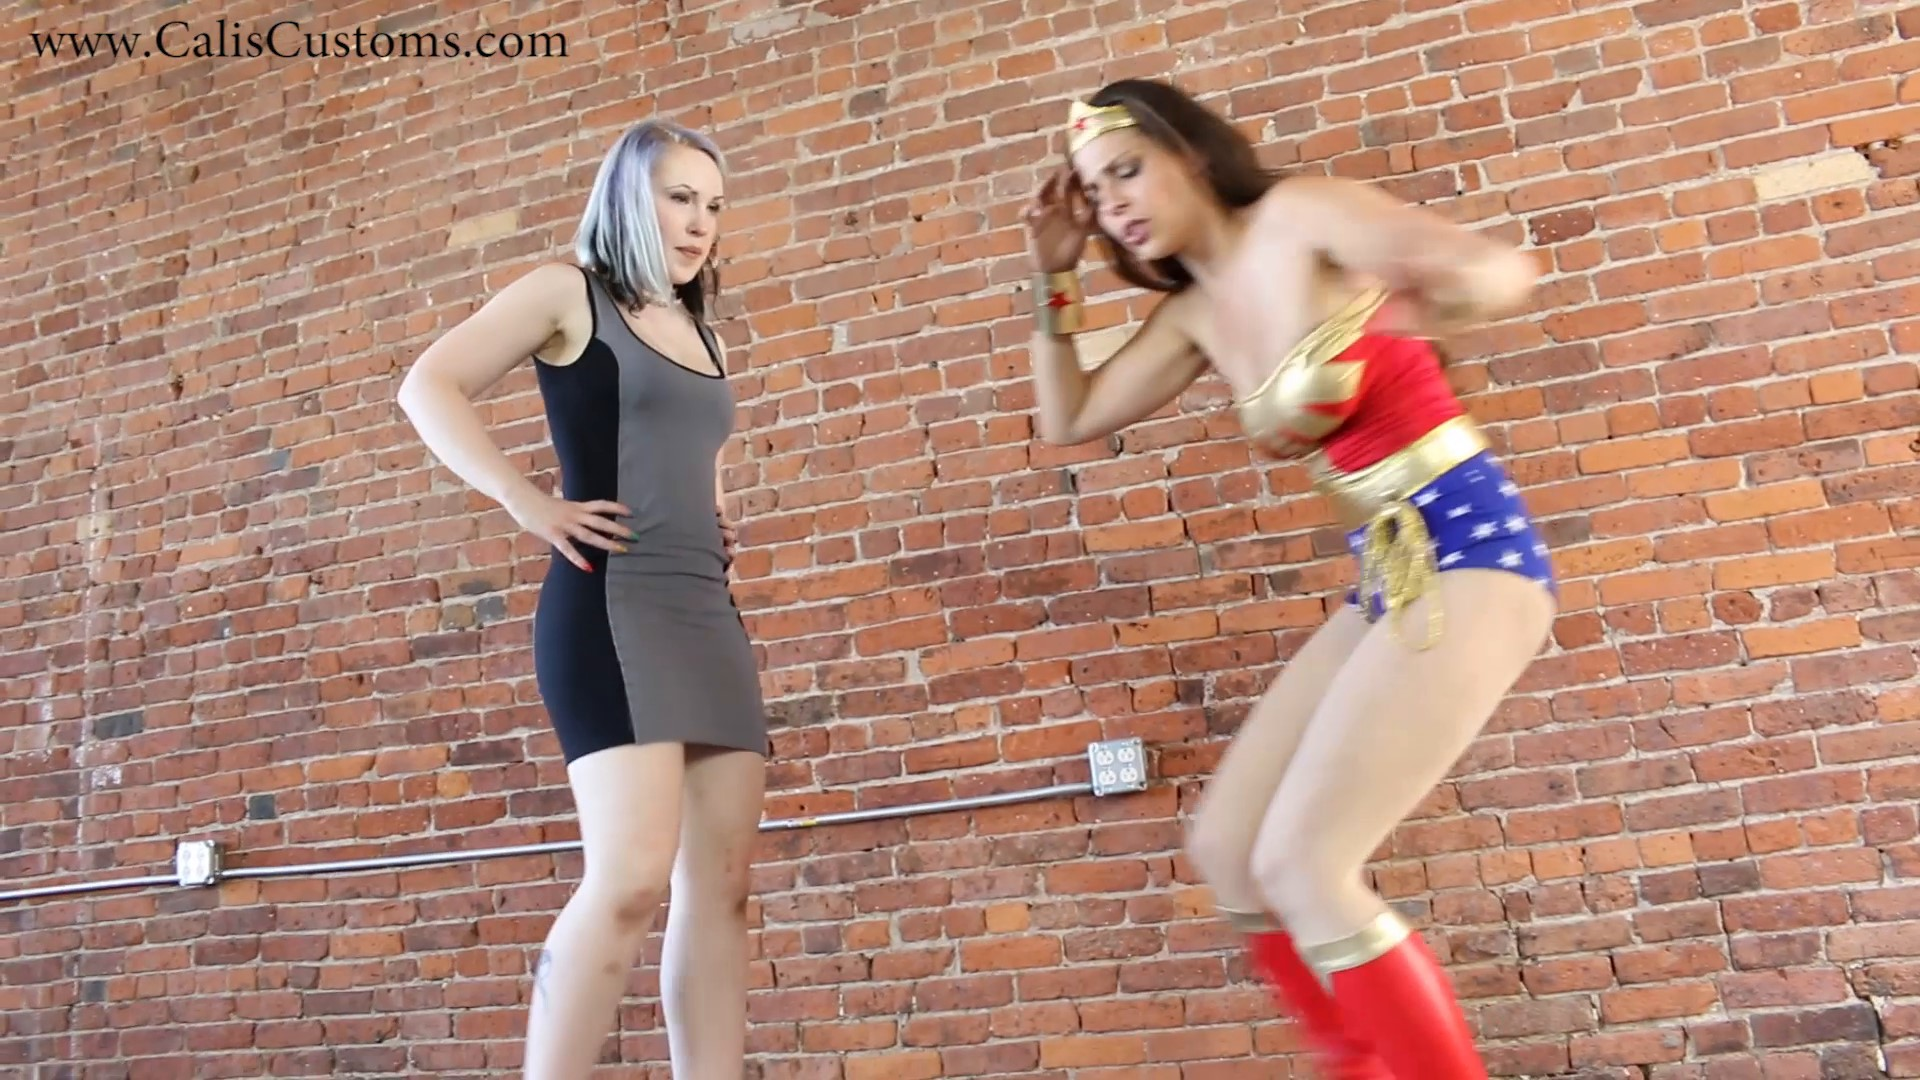 CALI The Wonder Woman KO Trap (68)